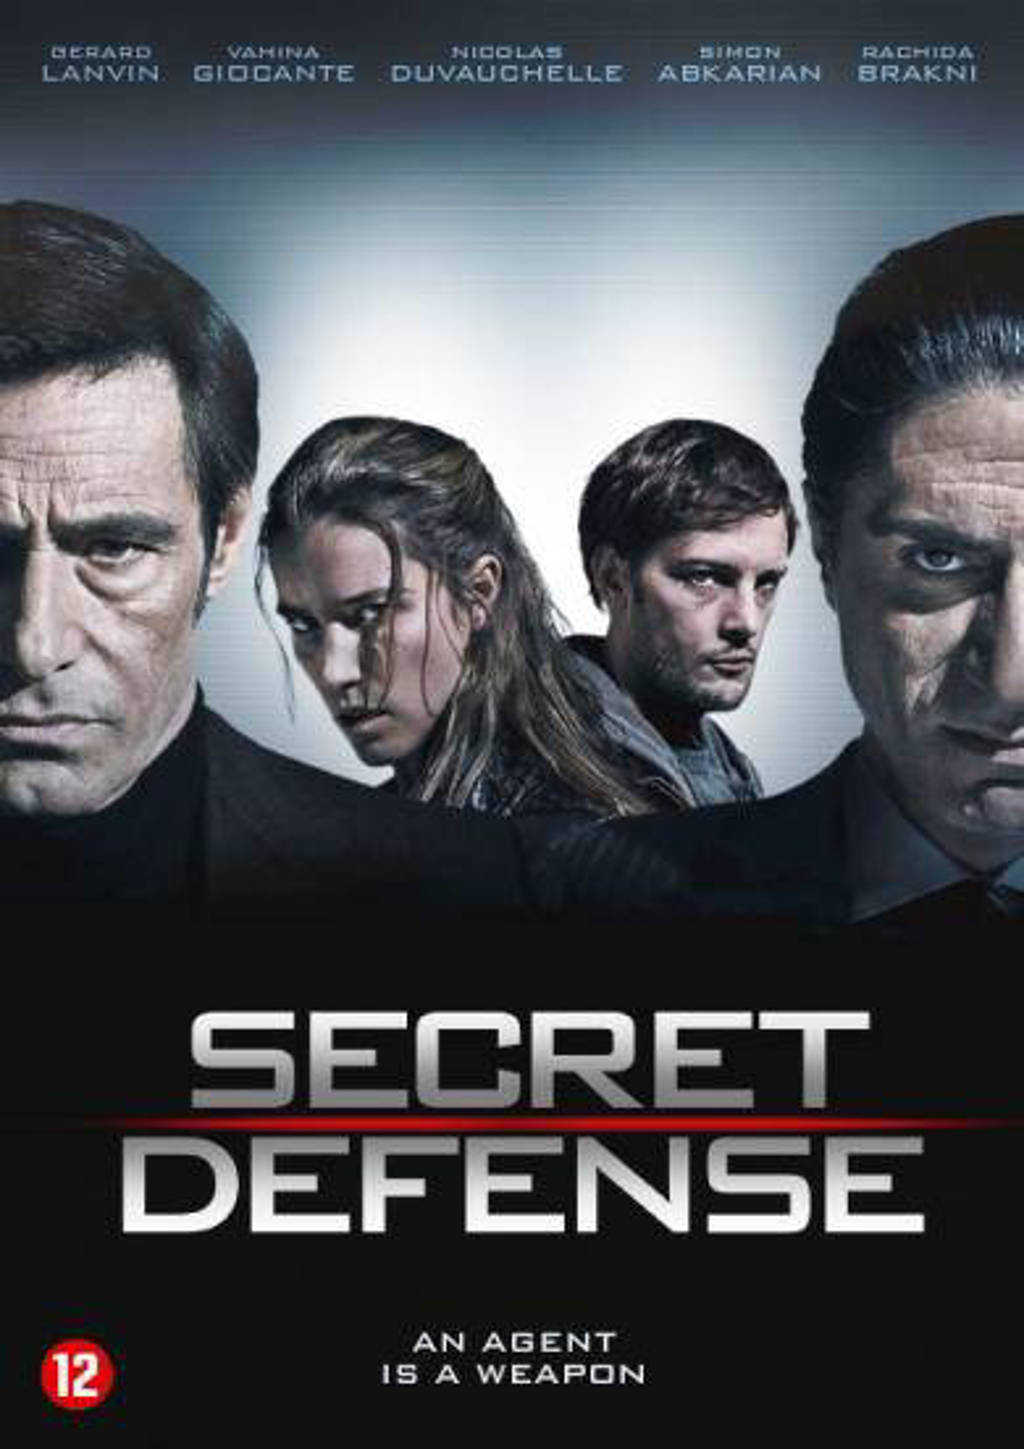 Secret defense (DVD)